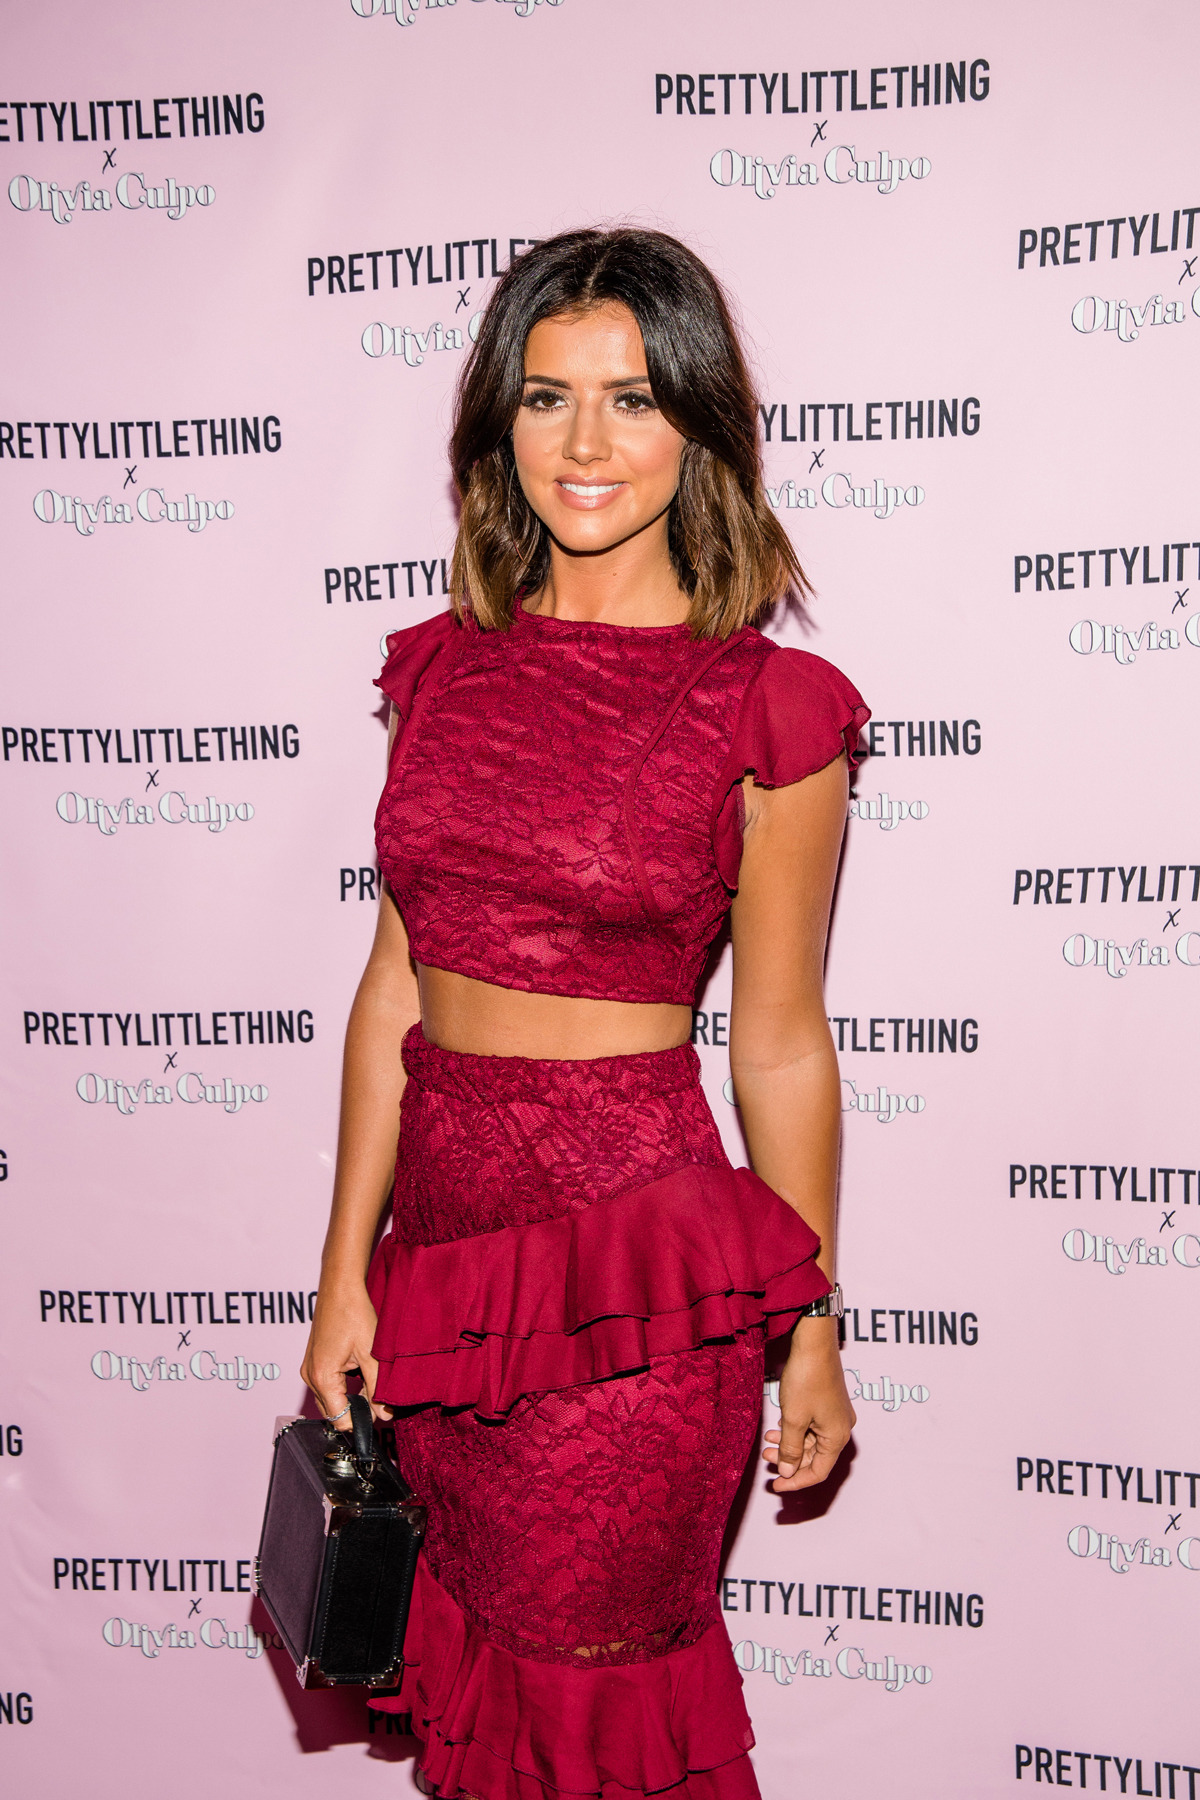 PrettyLittleThing PLT X Olivia Culpo Collection  Celebrity Launch PartyLucy Mecklenburgh.jpg